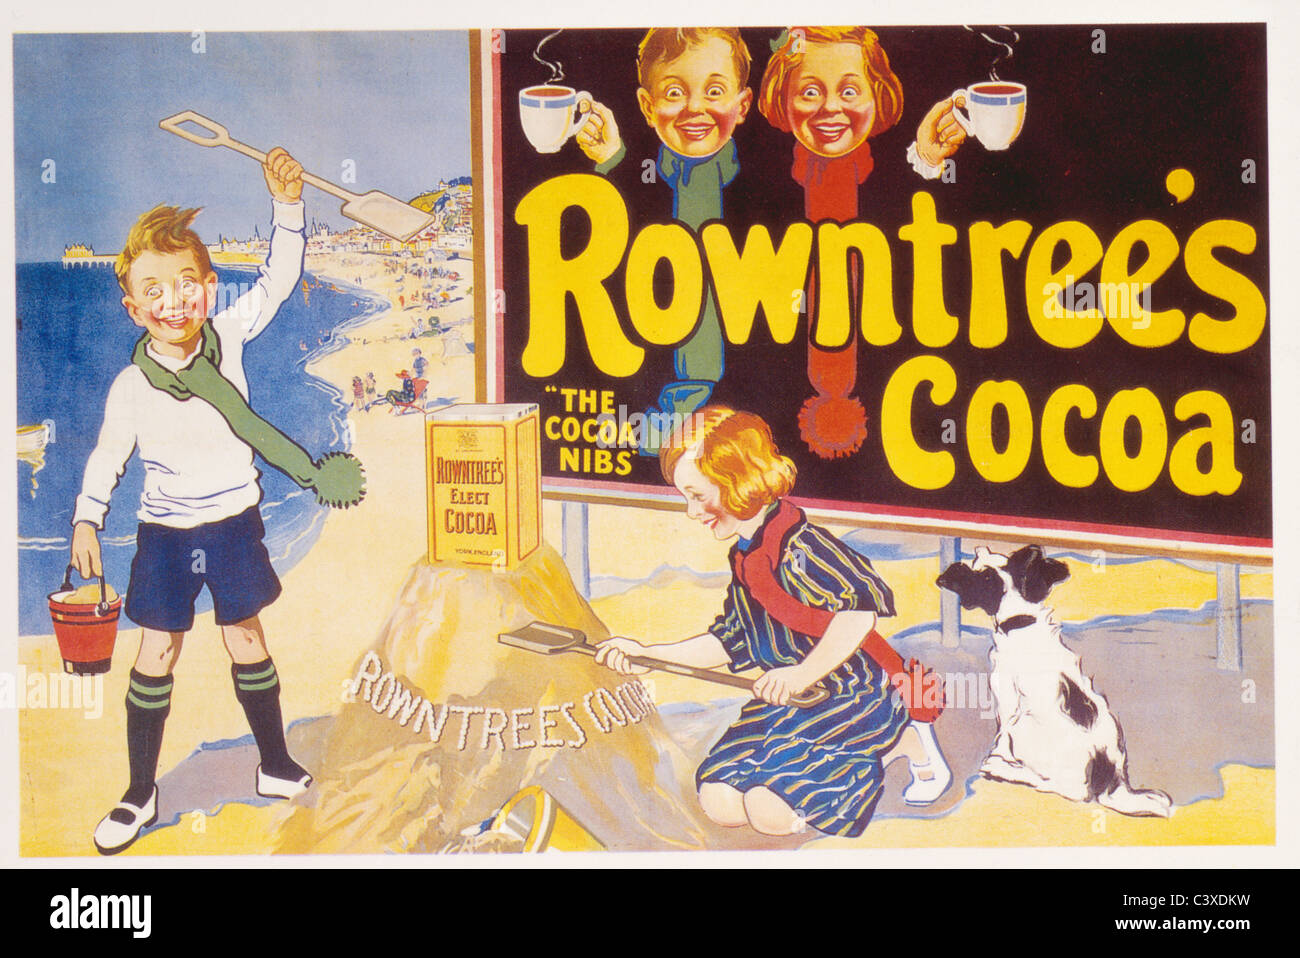 Rowntree's Cocoa, par anonyme. Angleterre, 1957 Banque D'Images